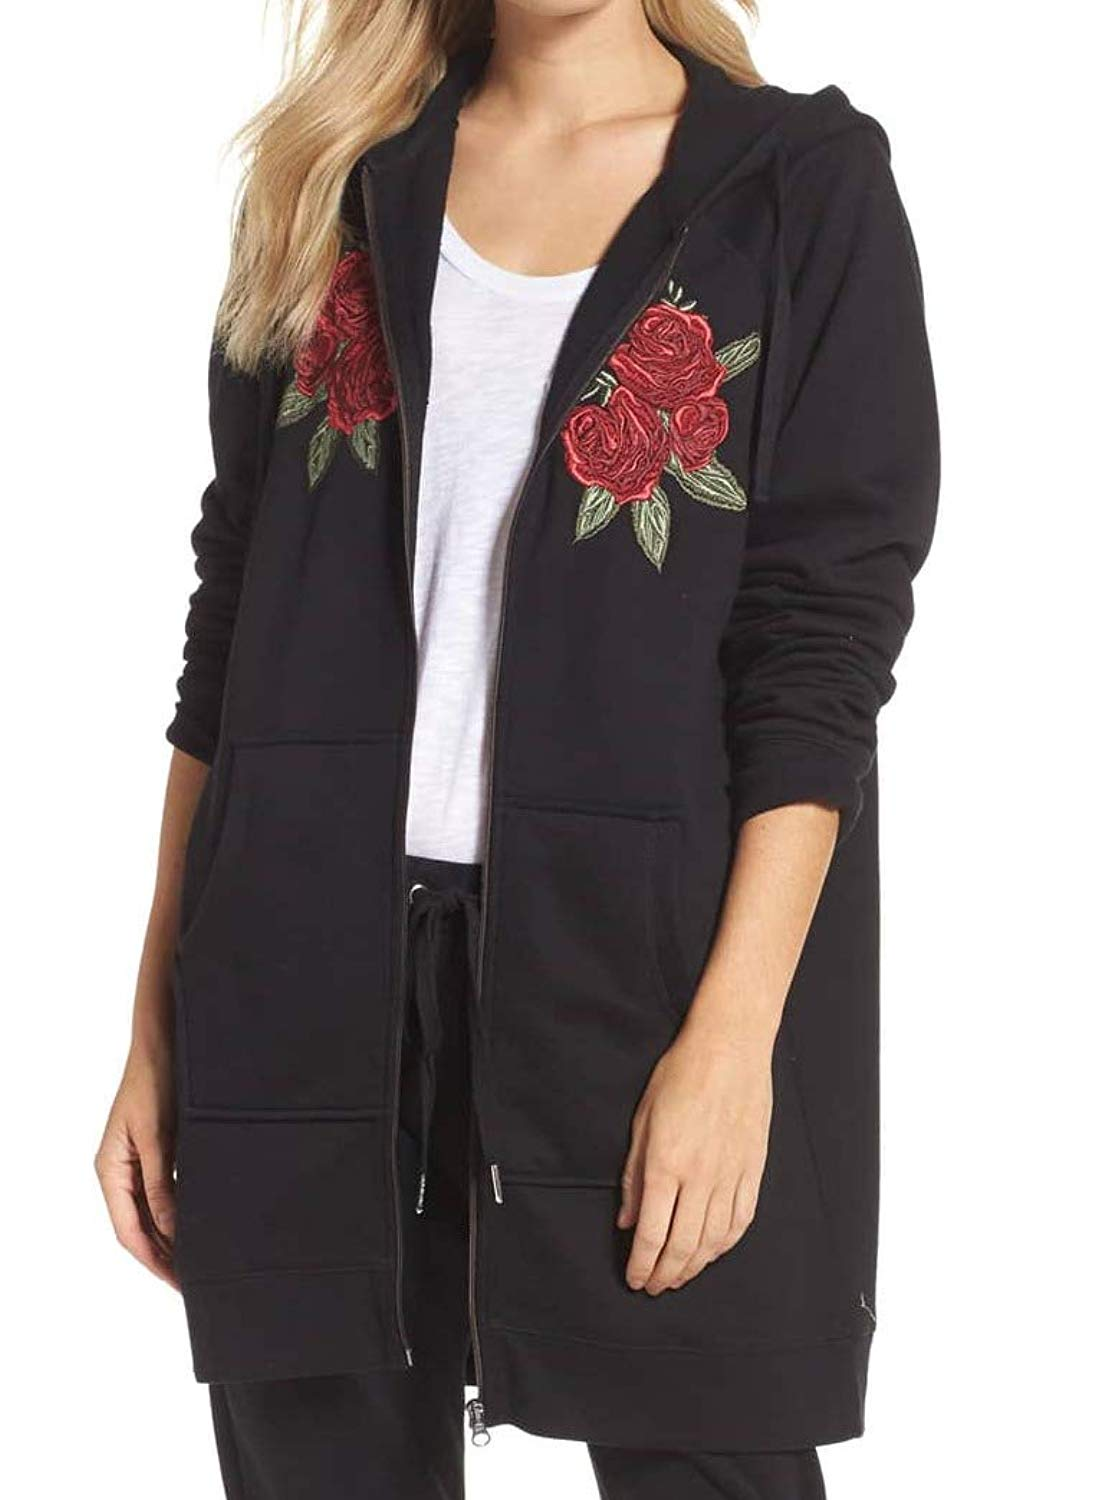 3ac7385d6b45 Get Quotations · Brunette the Label Womens Floral Full Zip Sweater Black XS